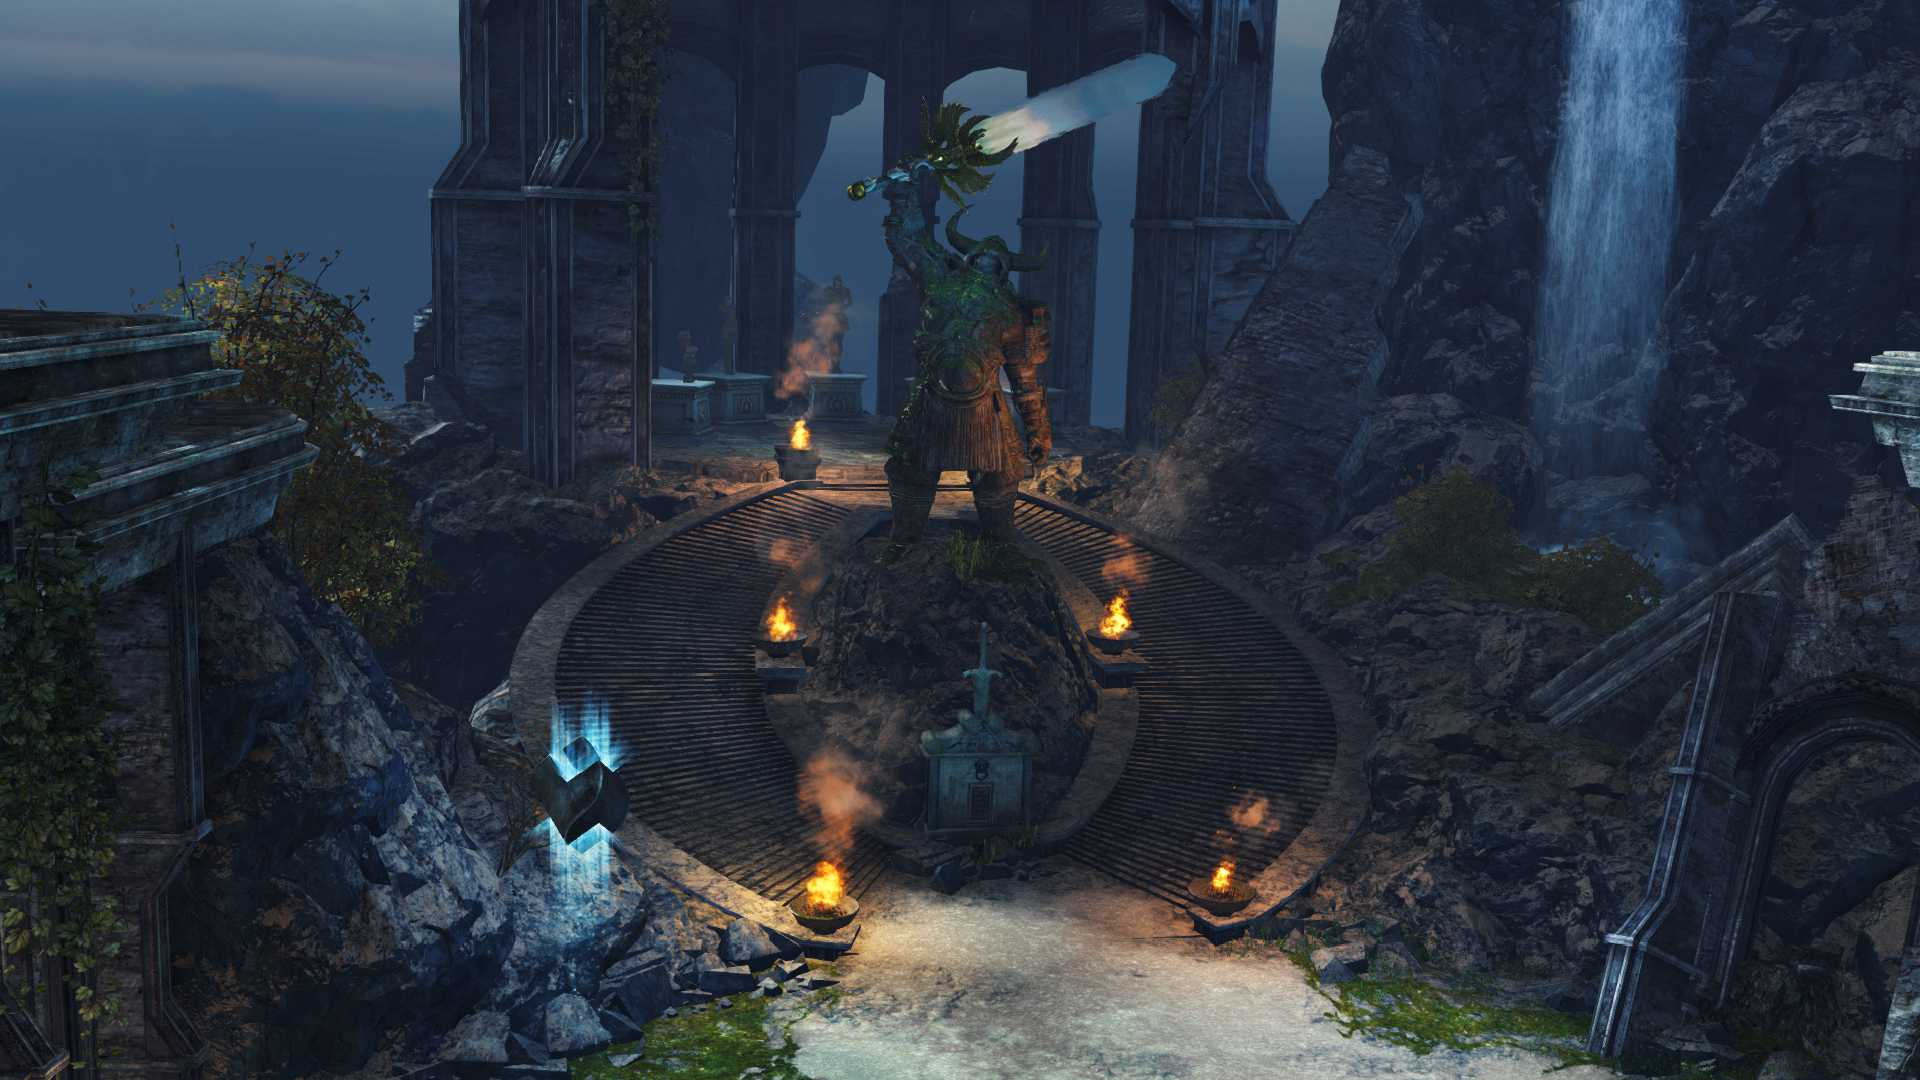 Pvp lobbycenterstatue compressed